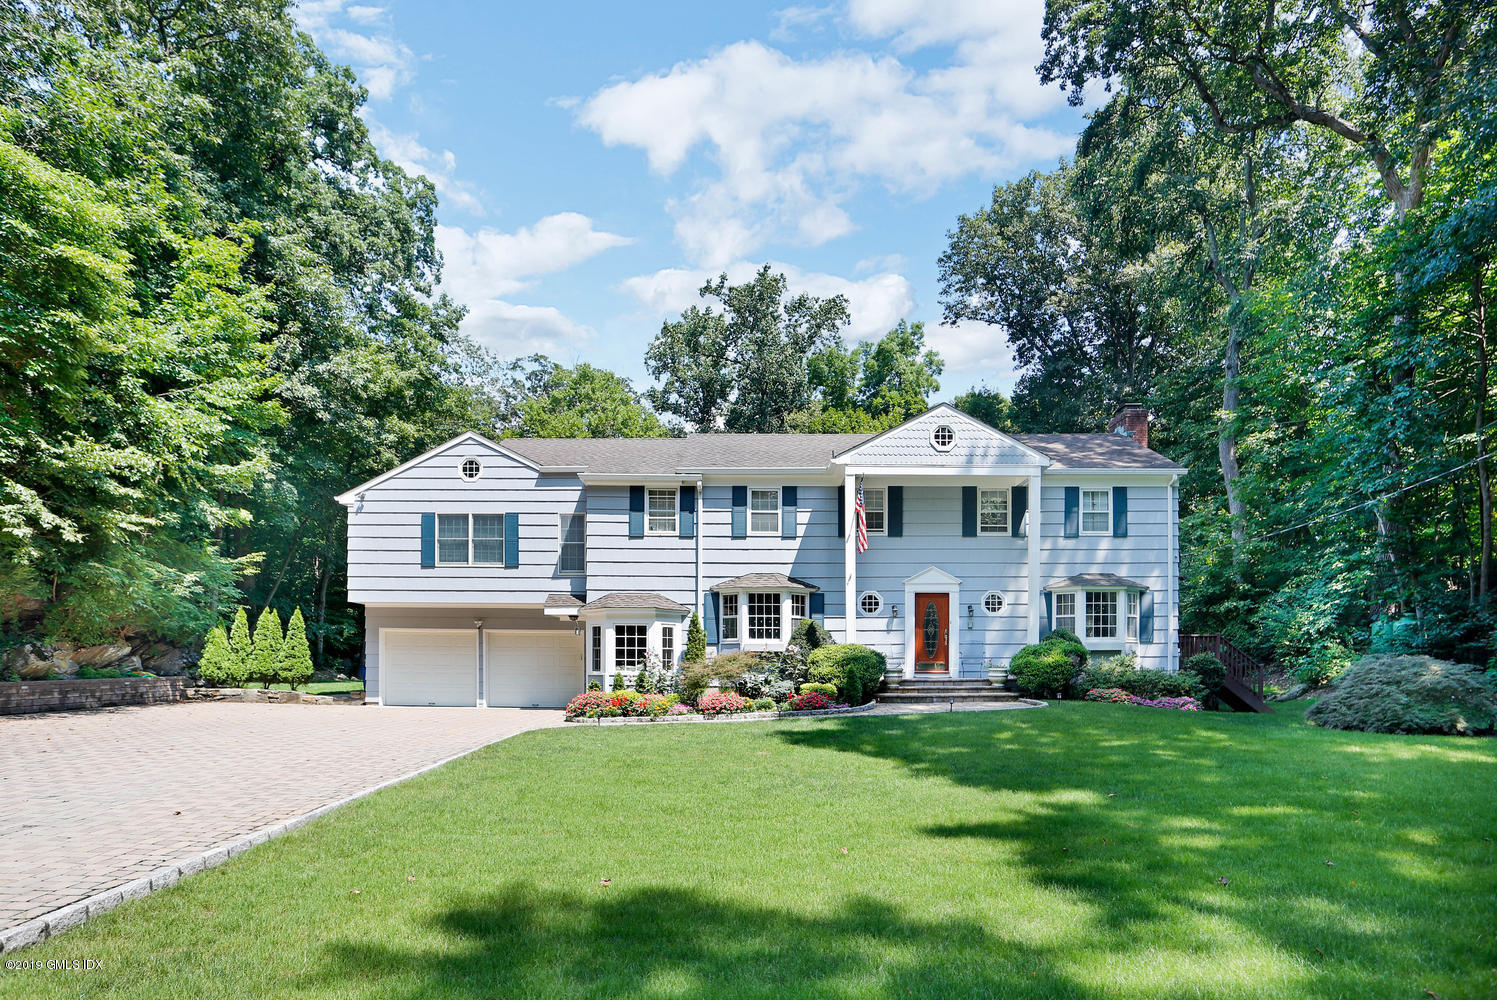 67 Stonehedge Drive South,Greenwich,Connecticut 06831,4 Bedrooms Bedrooms,3 BathroomsBathrooms,Single family,Stonehedge,107856